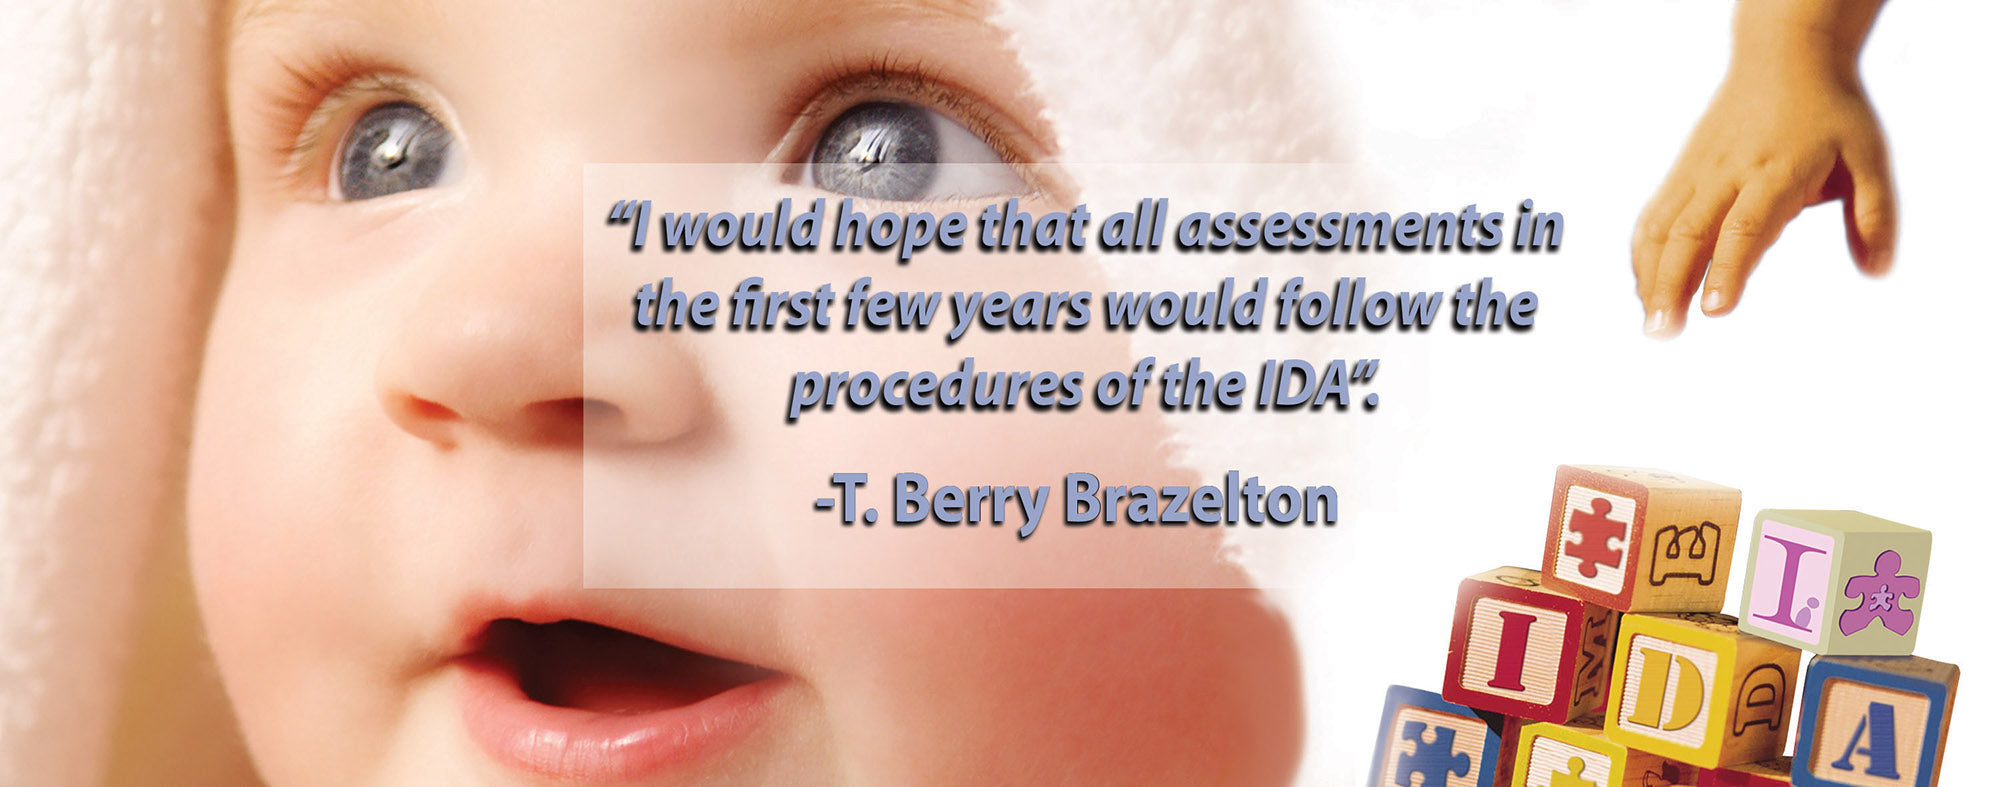 The IDA is a best practice developmental assessment for infants and toddlers recommended by T. Berry Brazelton and other experts in the field